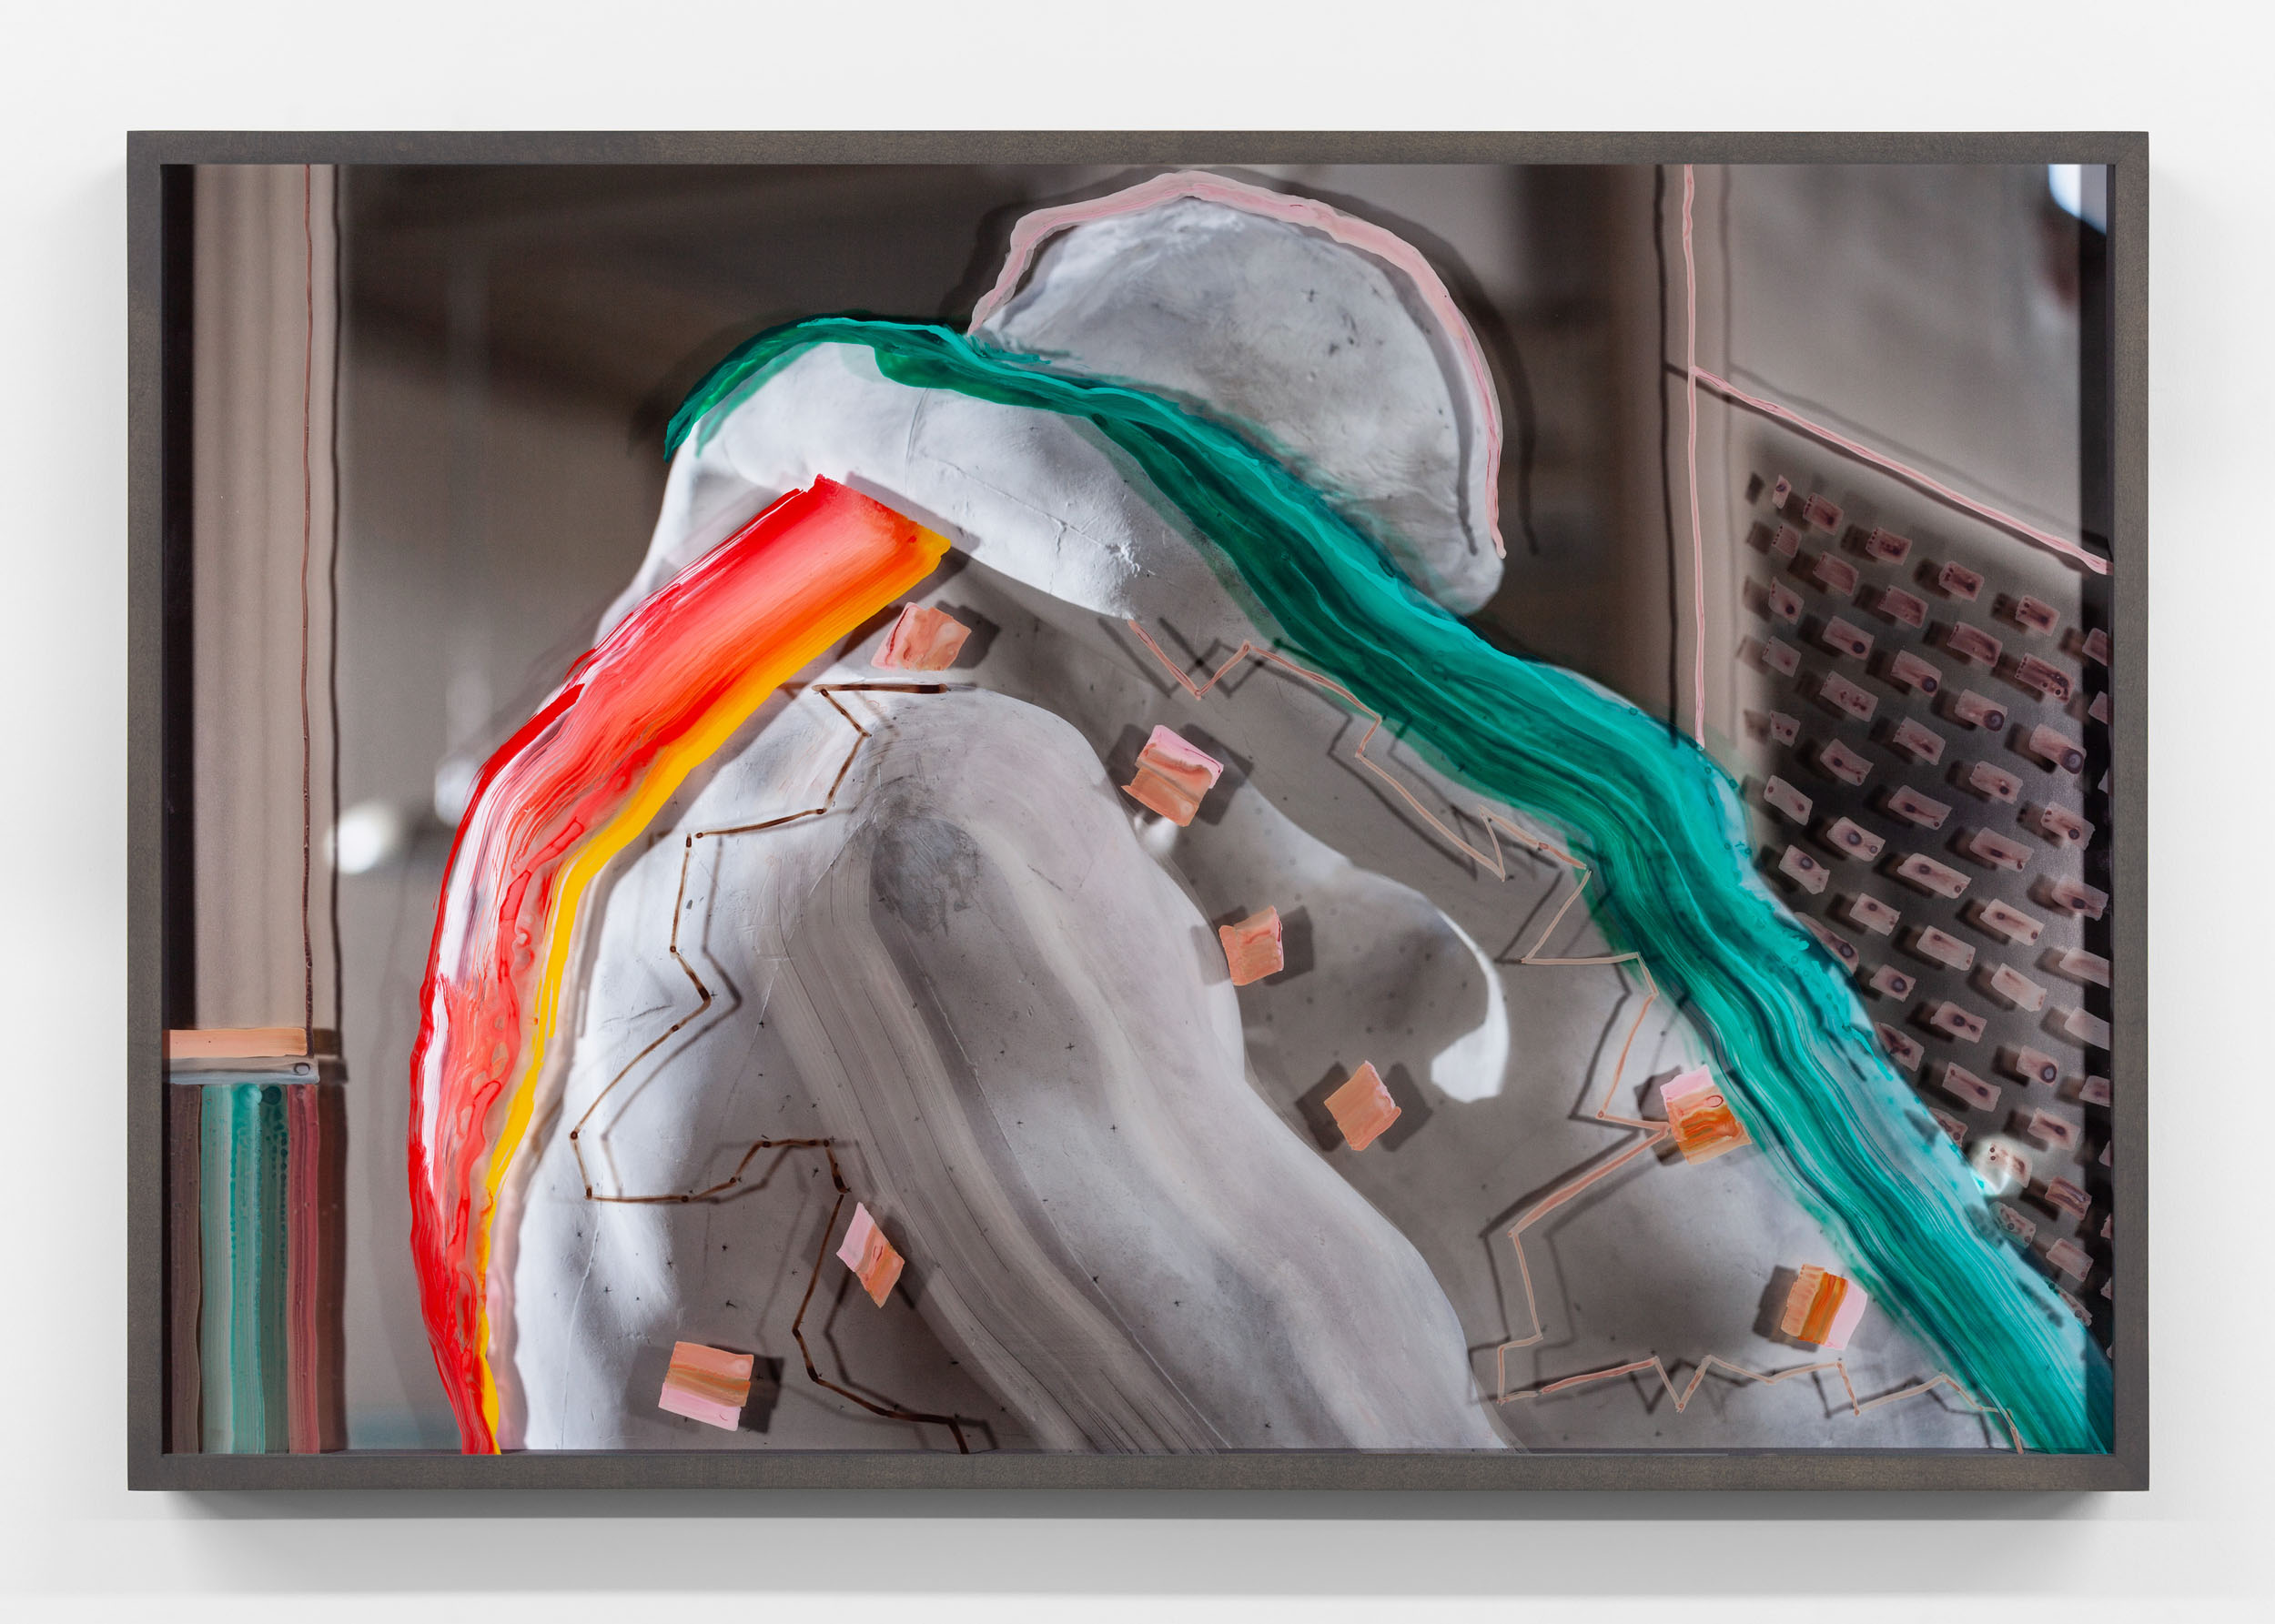 Untitled (The Kiss with red and green strokes) 2019, hand-painted museum acrylic over archival pigment print 61 x 91.5 cm / 24 x 36 in. Unique work